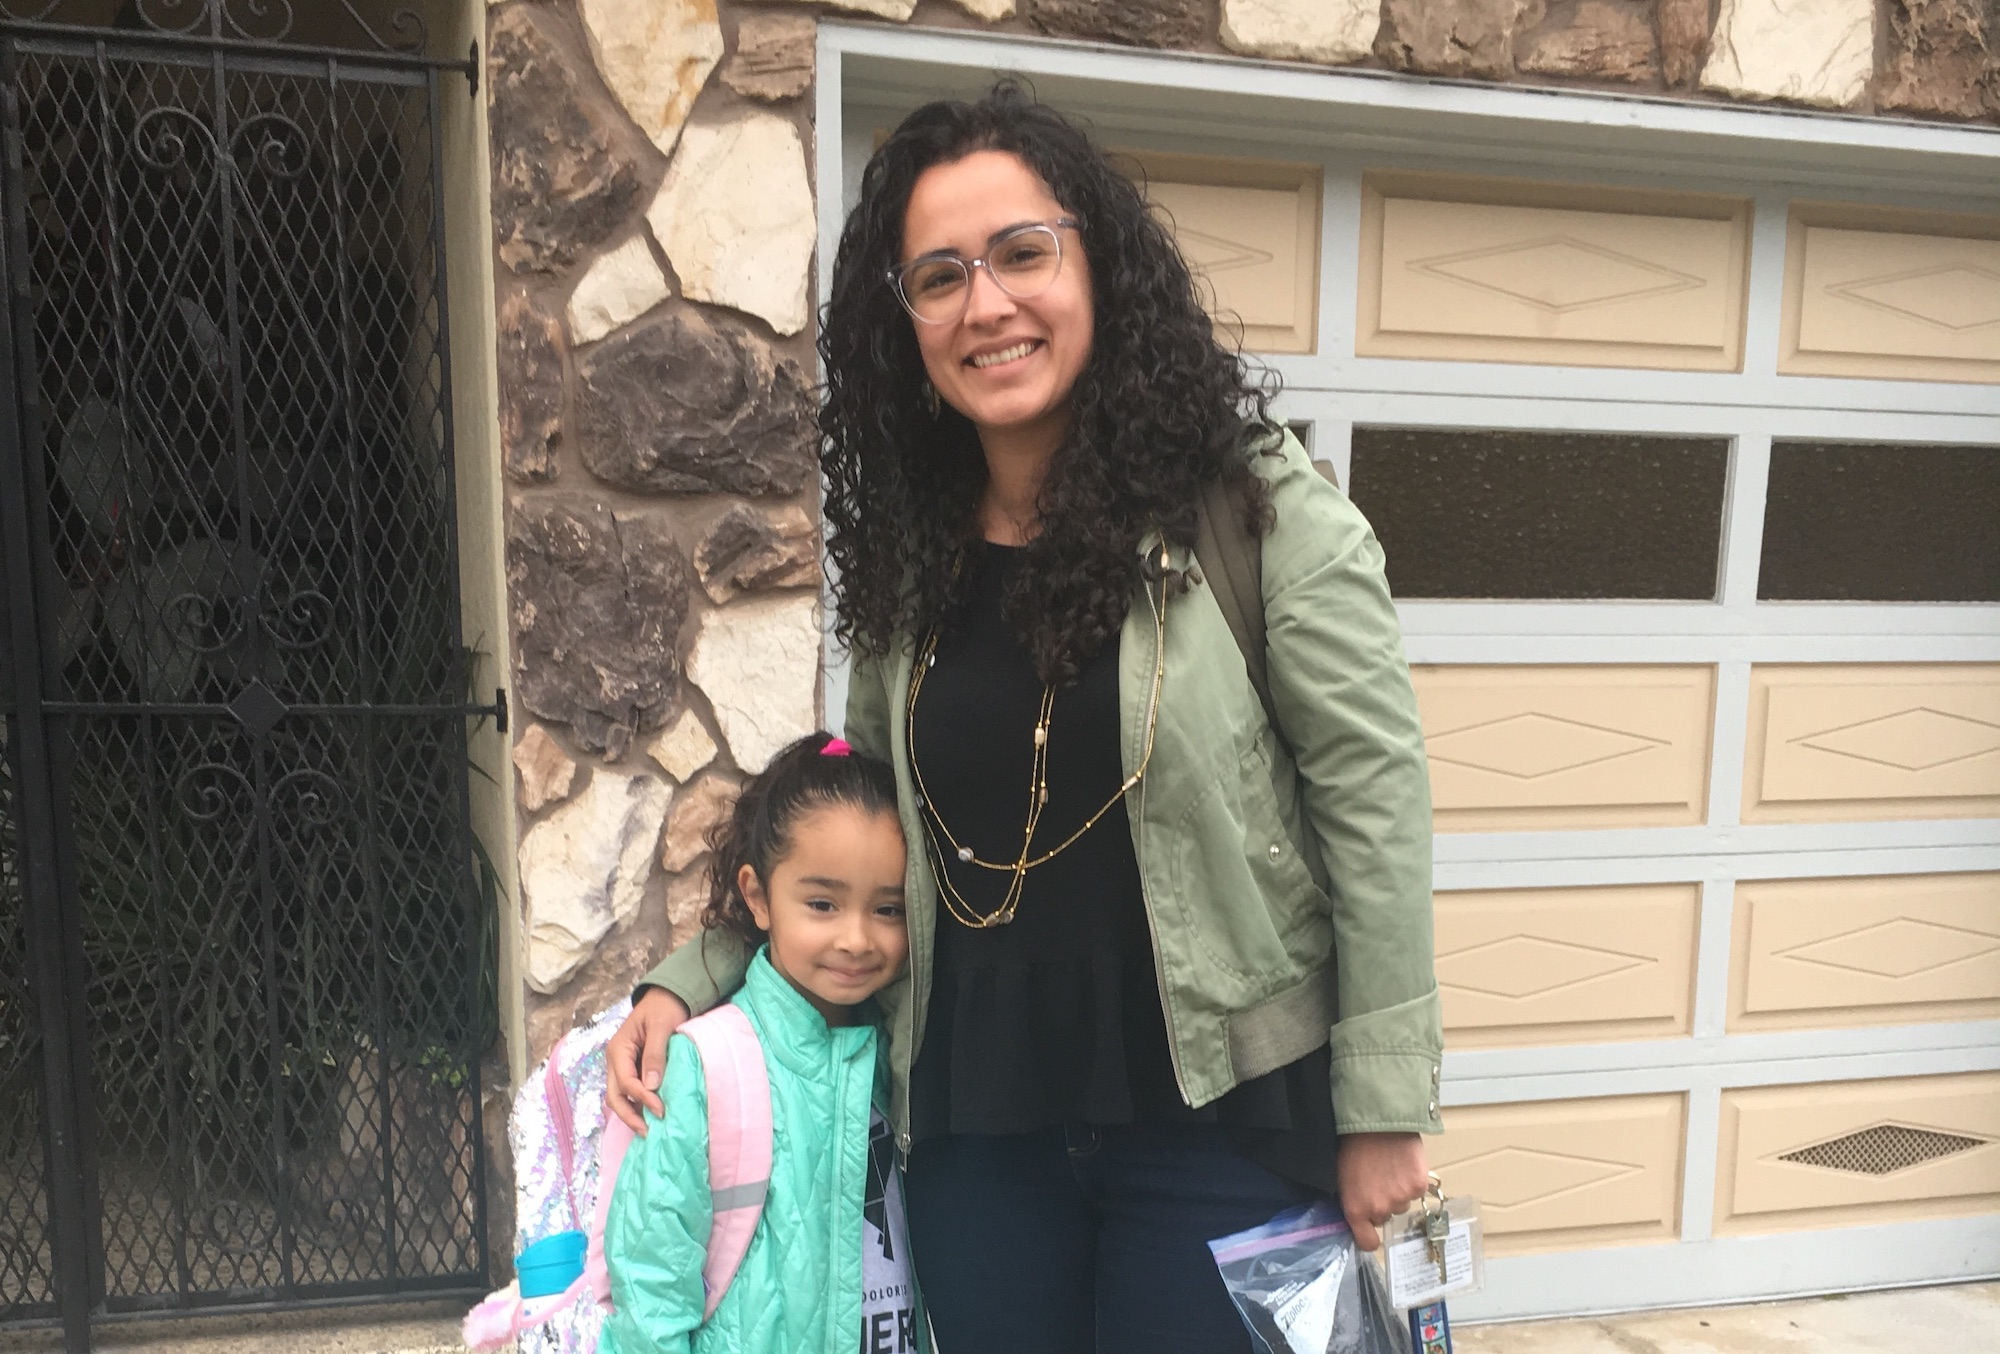 A woman with curly hair and glasses wearing a black dress and light green jacket side hugs her daughter who is wearing a teal blue jacket and backpack in front of their apartment